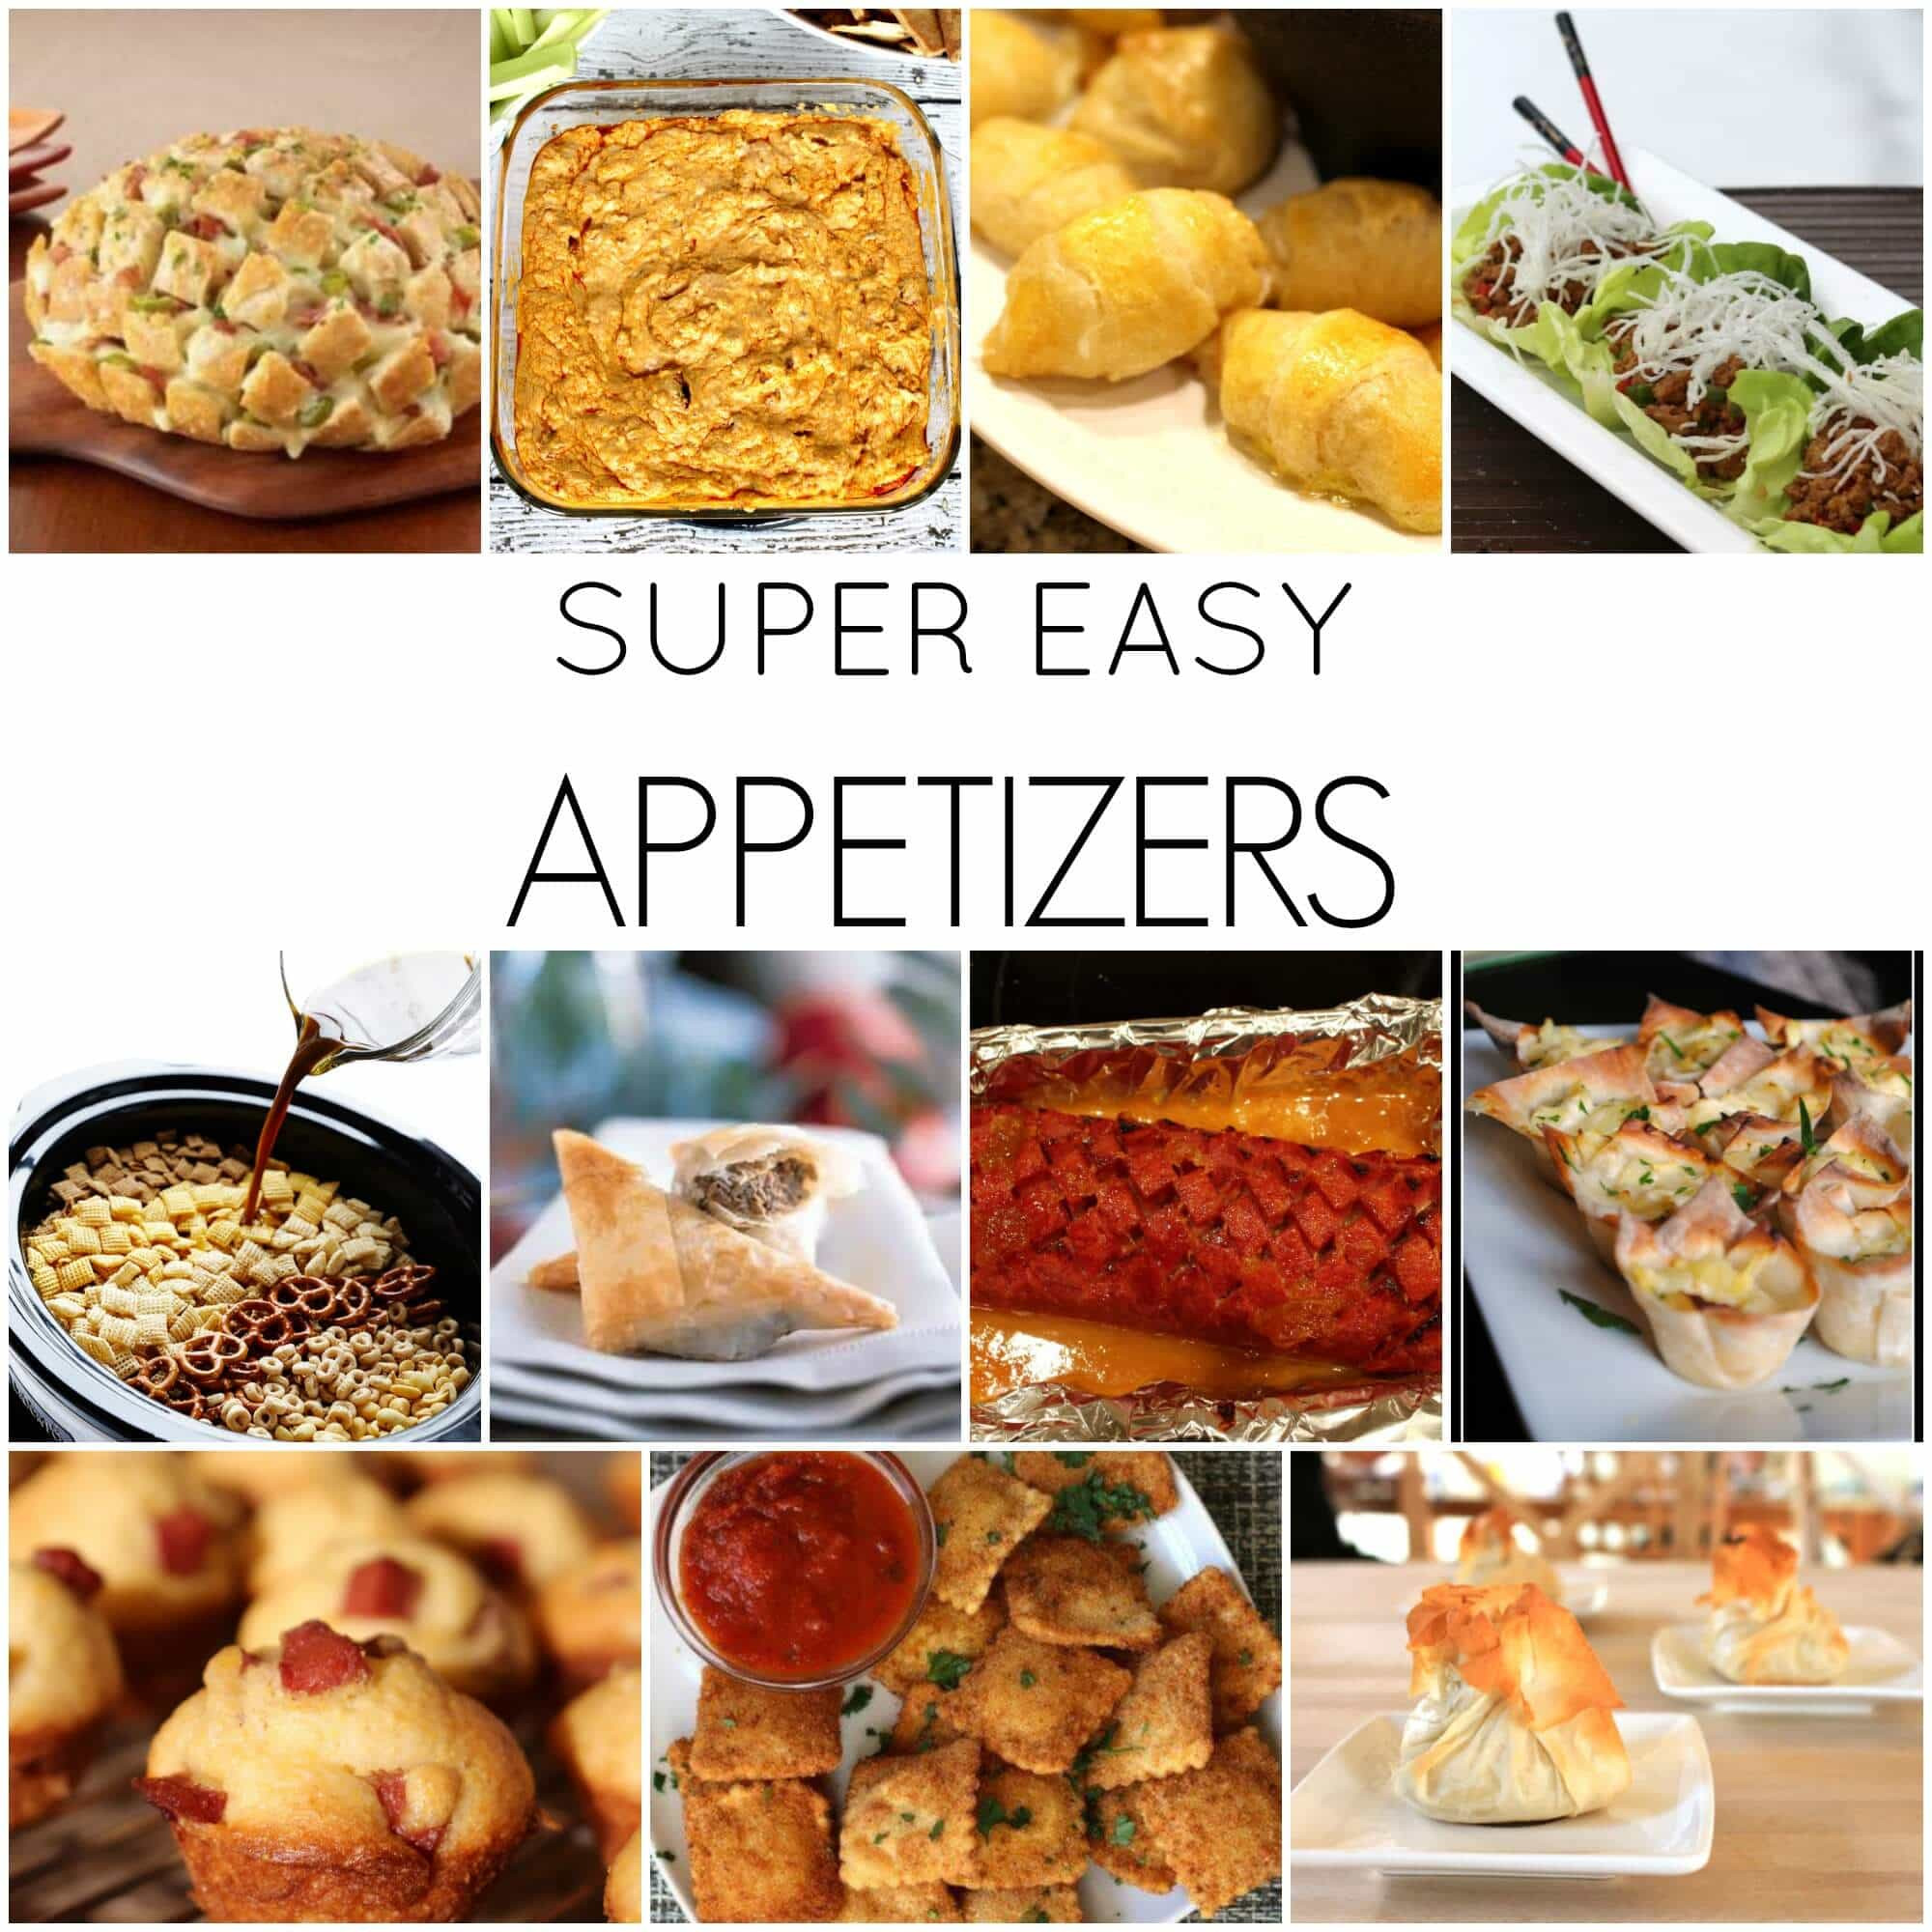 Easy New Years Appetizers  Easy Appetizers For New Year s Eve Princess Pinky Girl